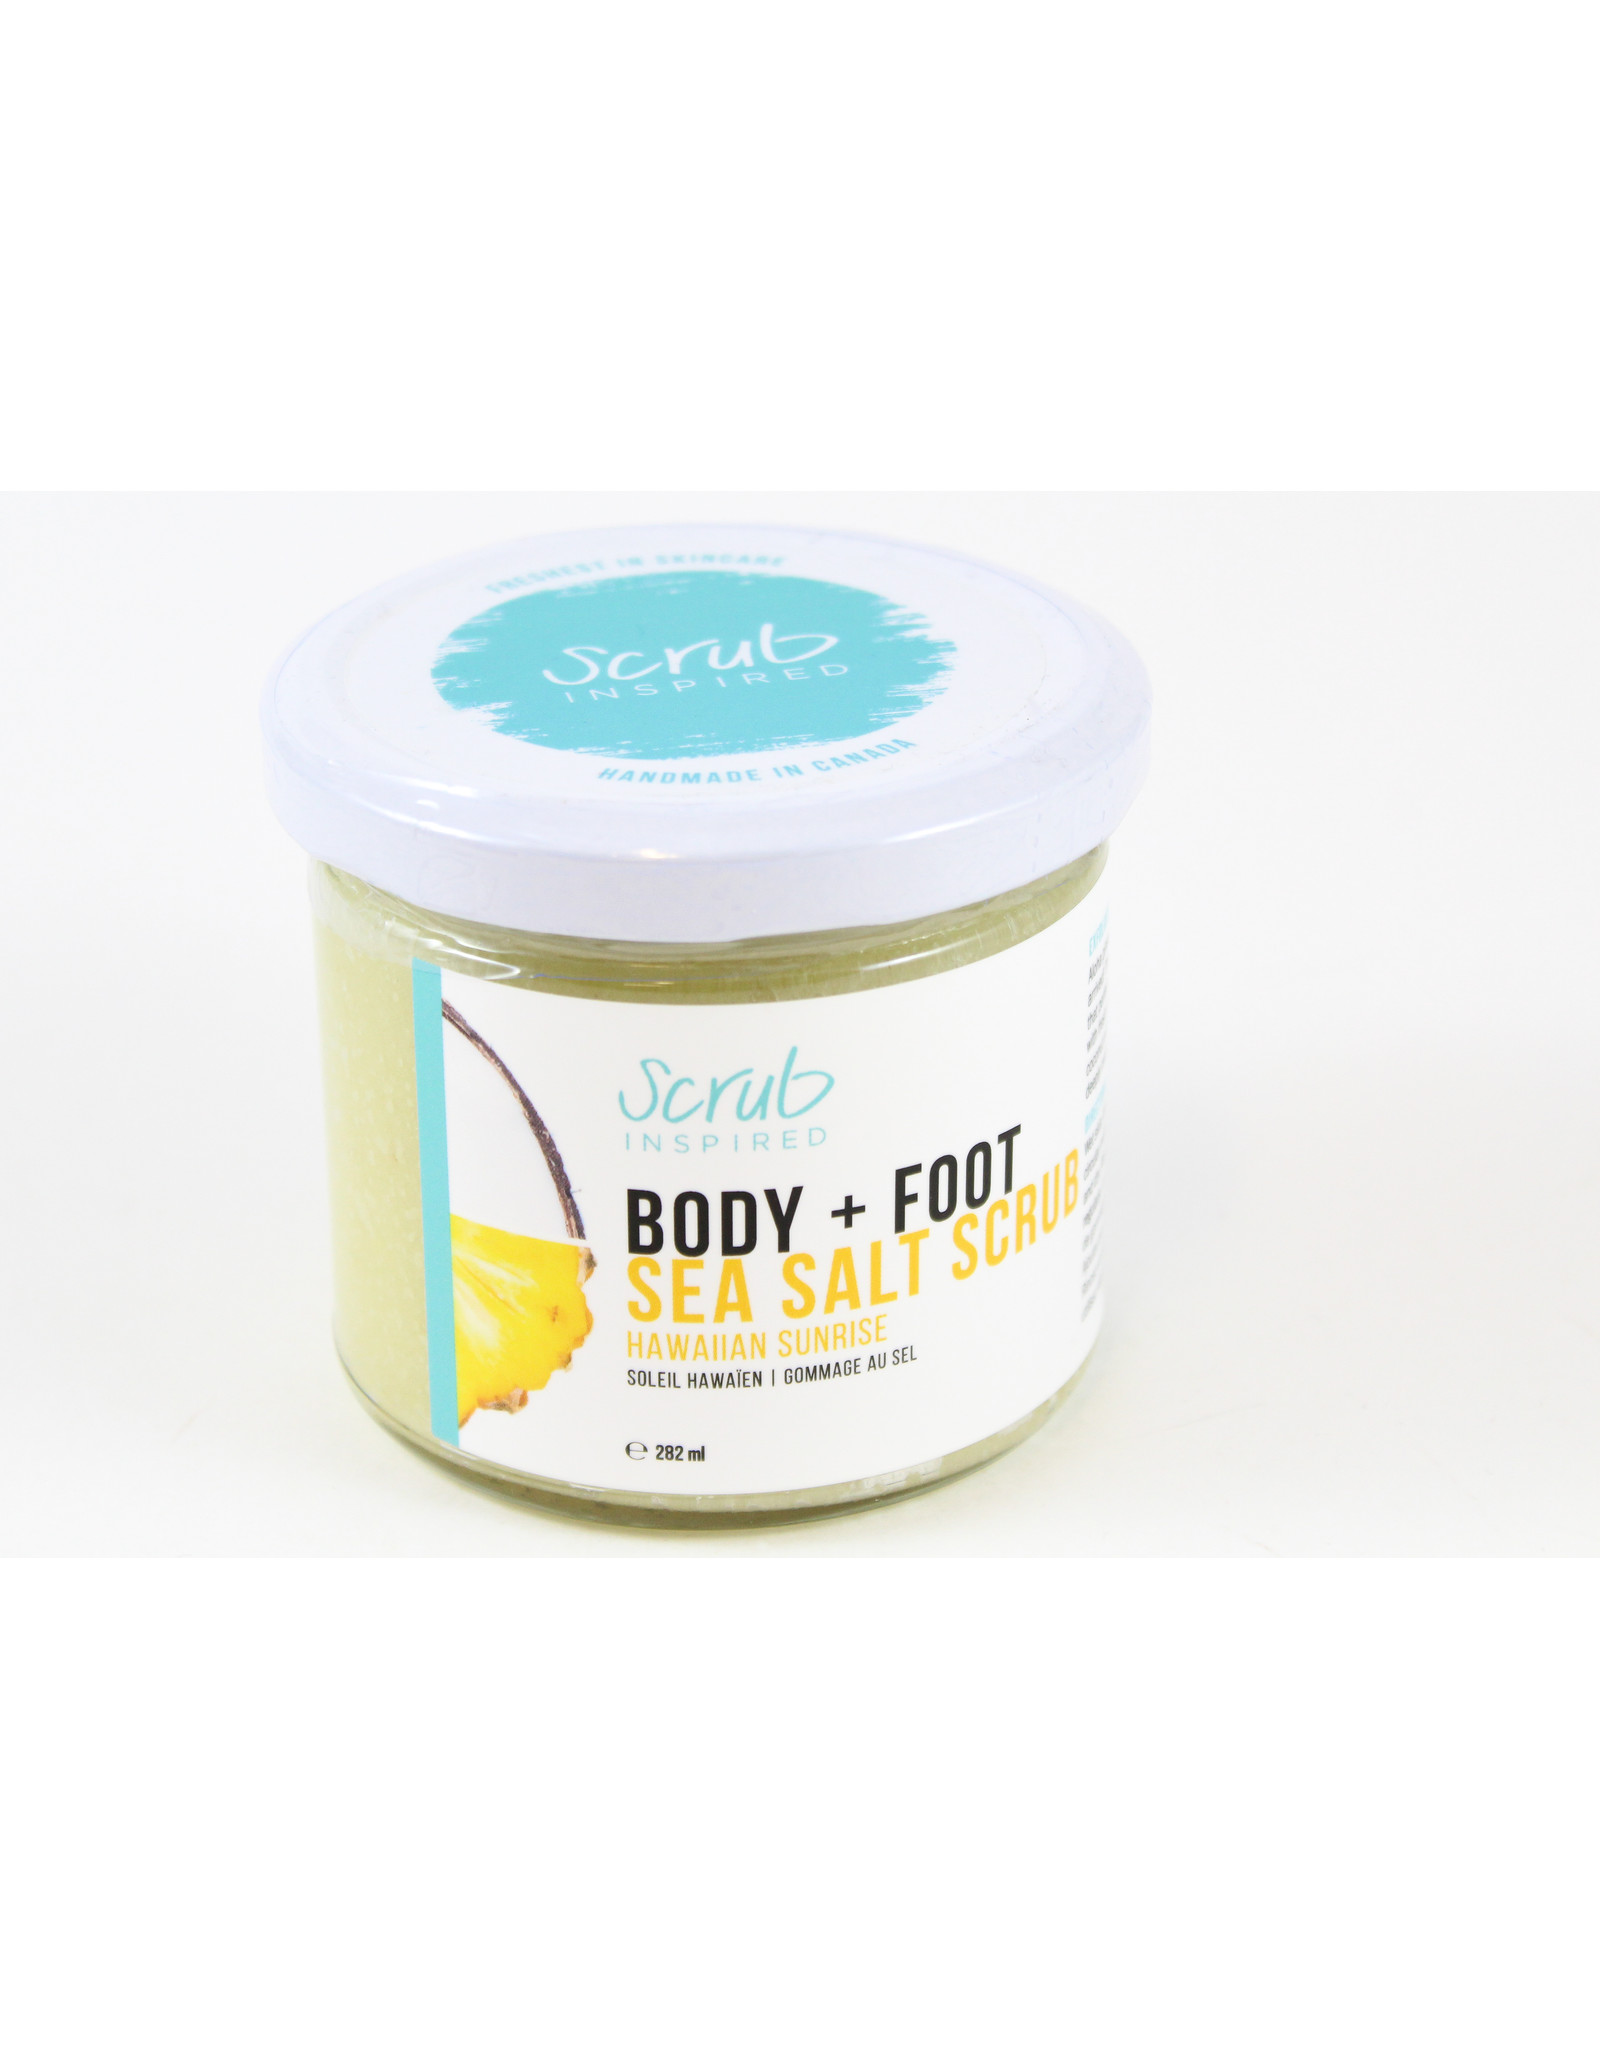 Scrub Inspired Body and Foot Scrubs by Scrub Inspired